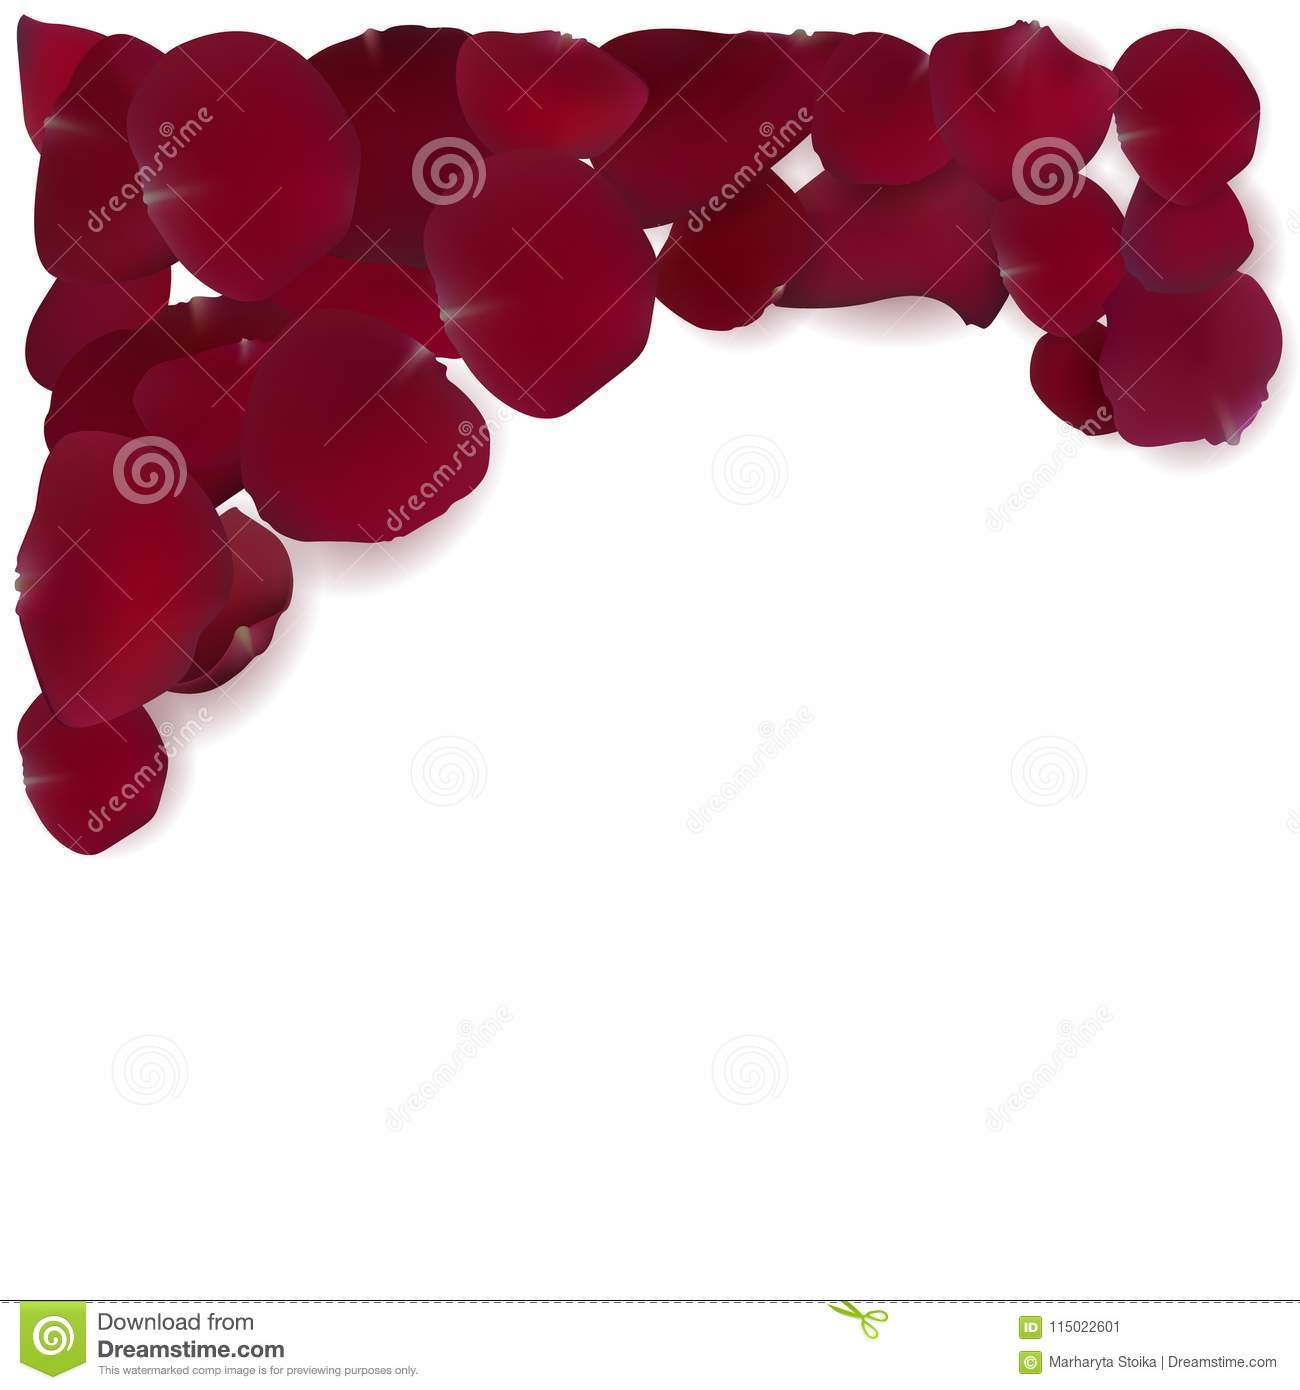 Frame of red rose petals. stock vector. Illustration of border ...